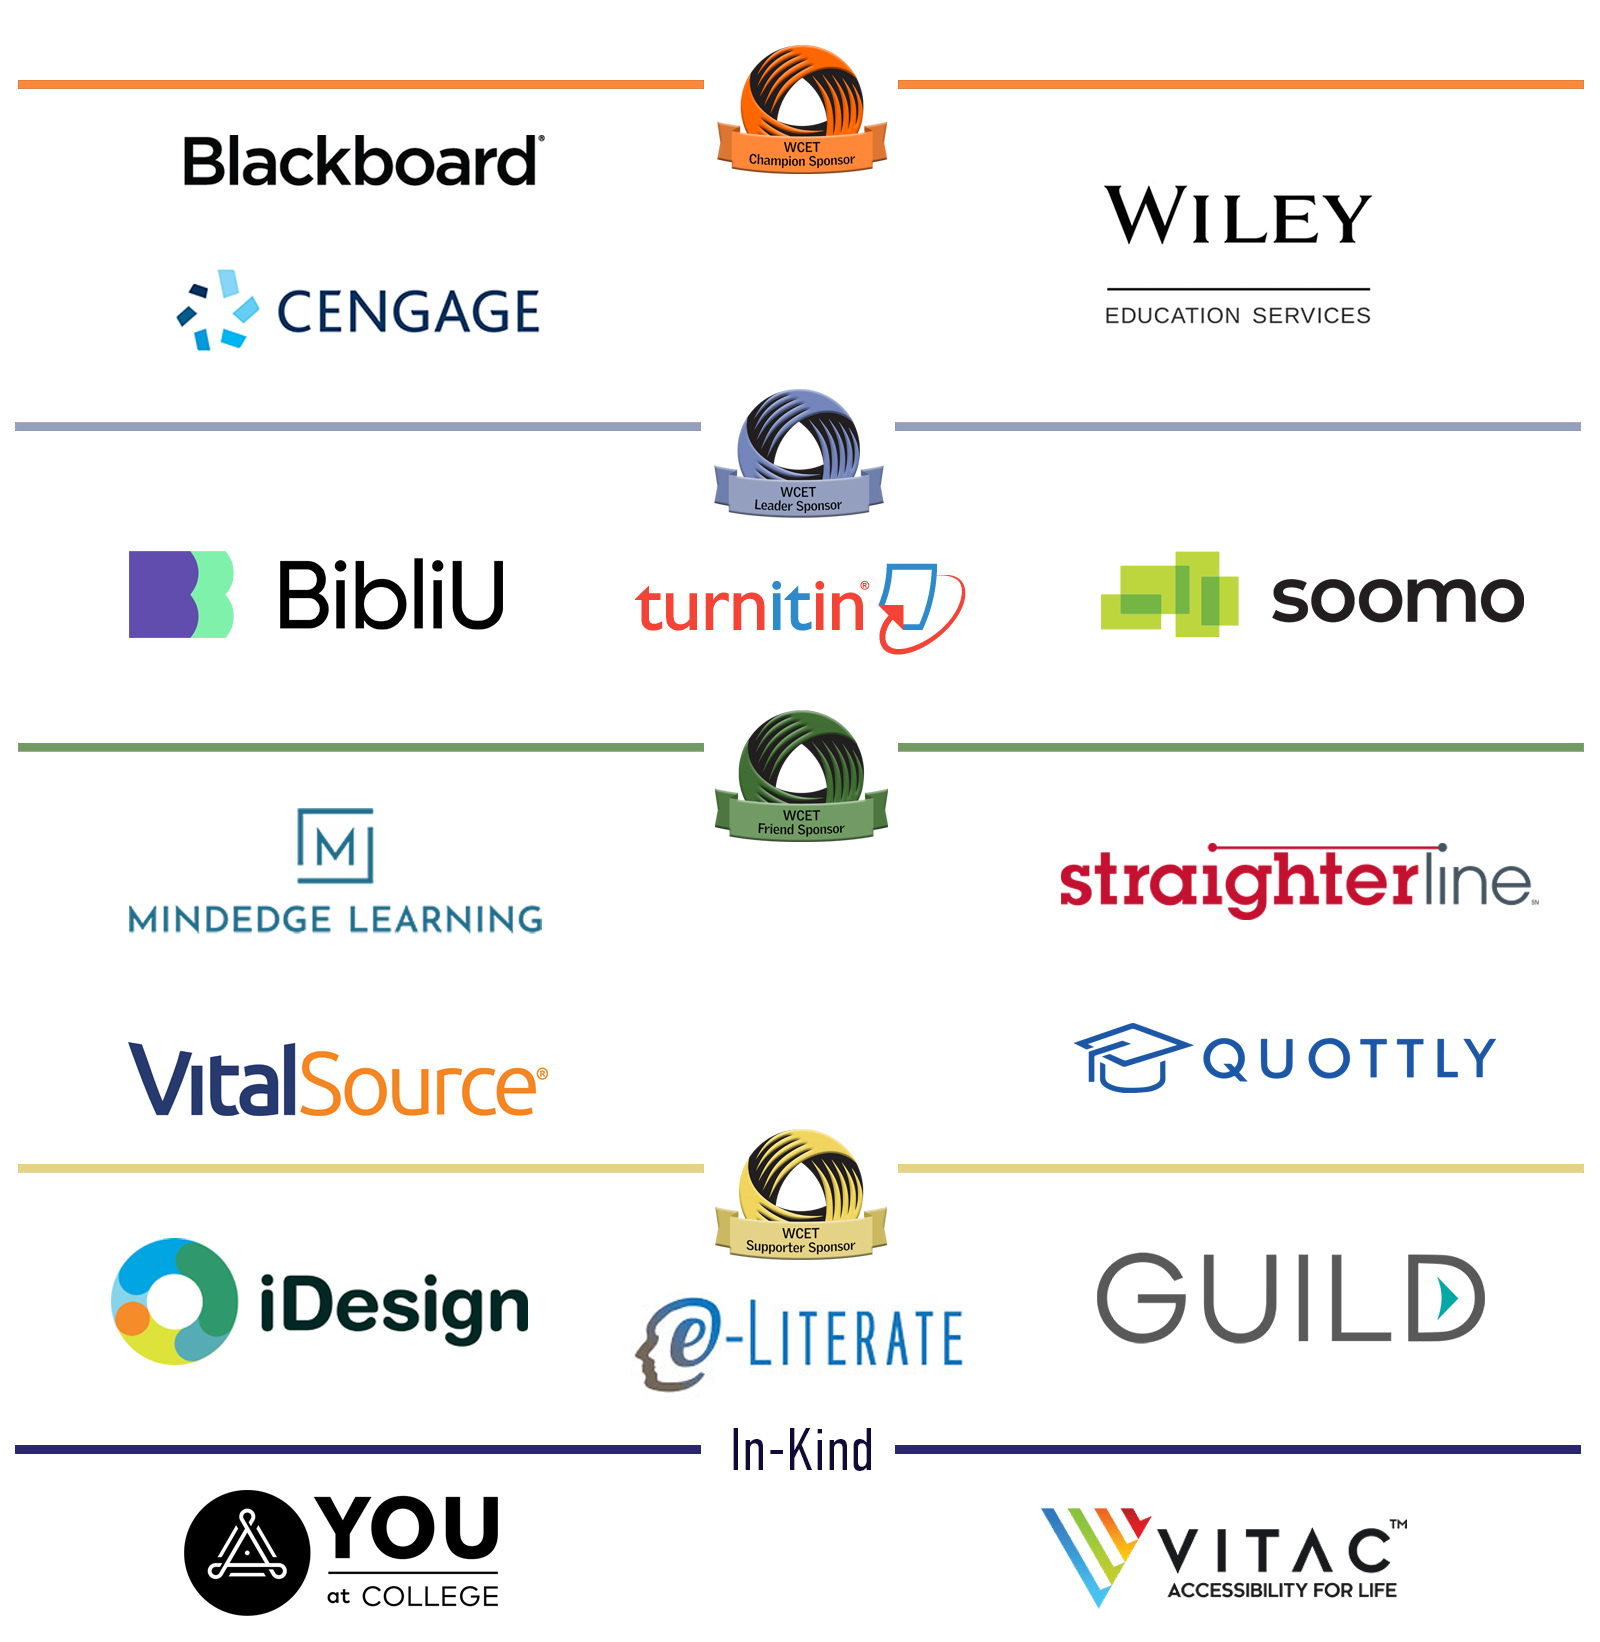 image of WCET sponsor logos: Blackboard, Cengage, Wiley Ed, BibliU, Turnitin, Soomo, Mindedge Learning, Straighterline, VitalSource, Quottly, iDesign, e-Literate, Guild, You at College, VITAC.